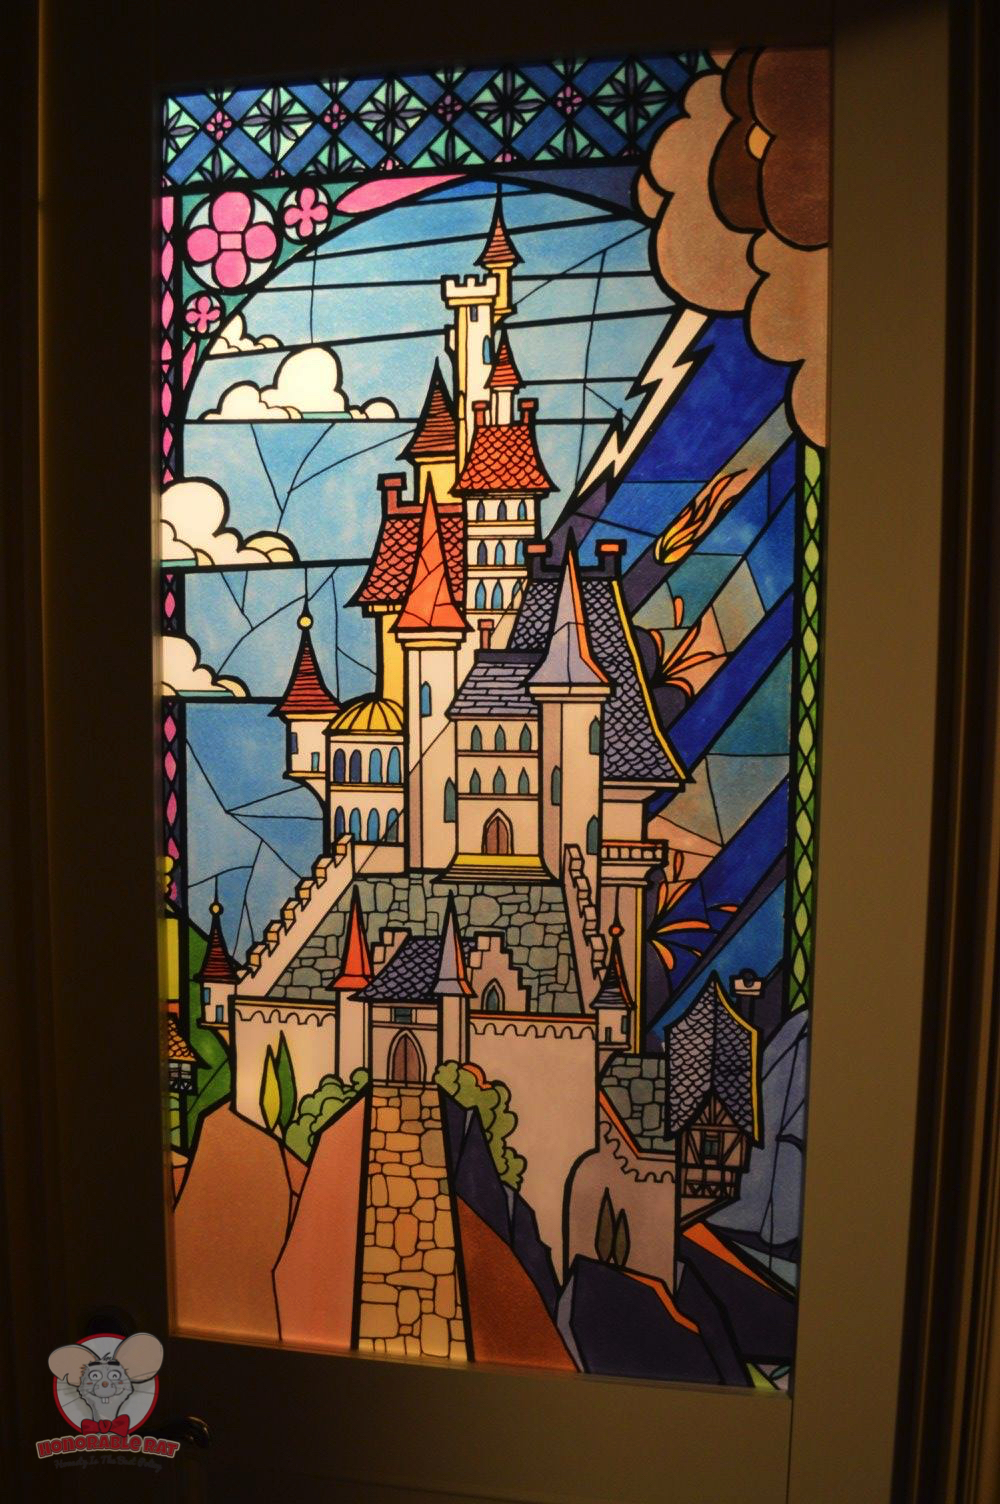 Closer look at the stained glass on the bathroom door